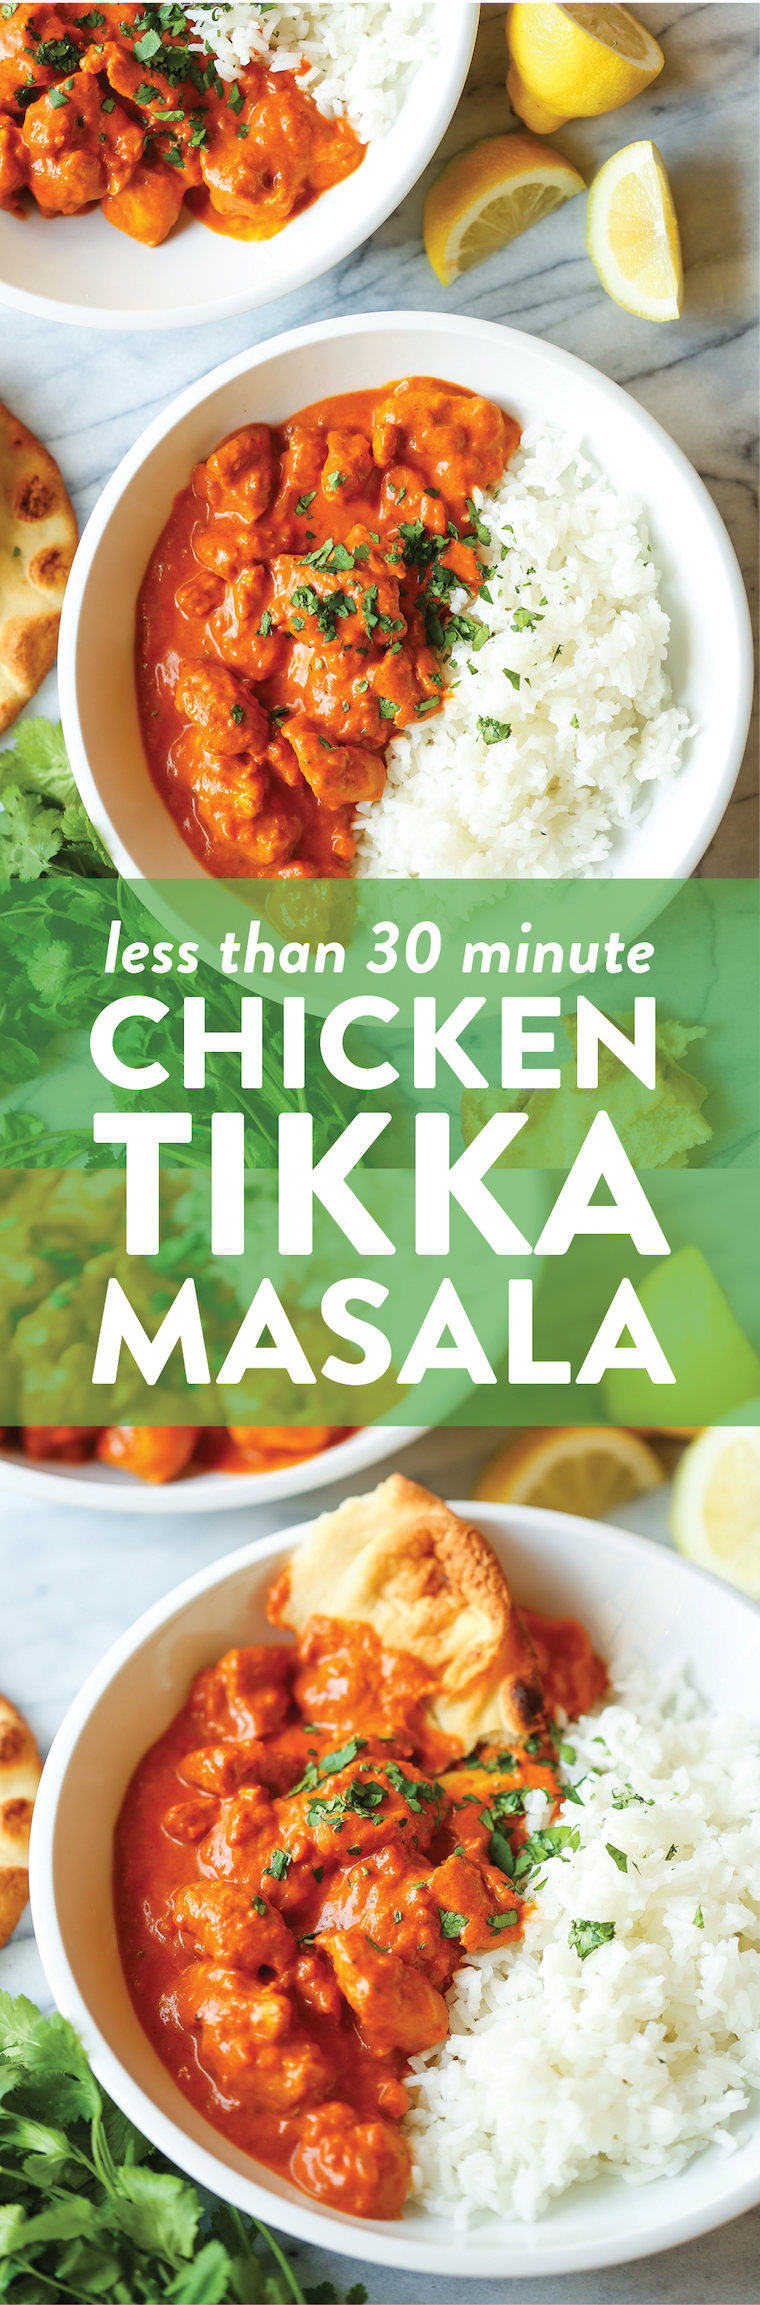 Easy Chicken Tikka Masala - 10000x better (and faster) than take-out! And the chicken is perfectly tender with the creamiest, most flavor-packed sauce ever!